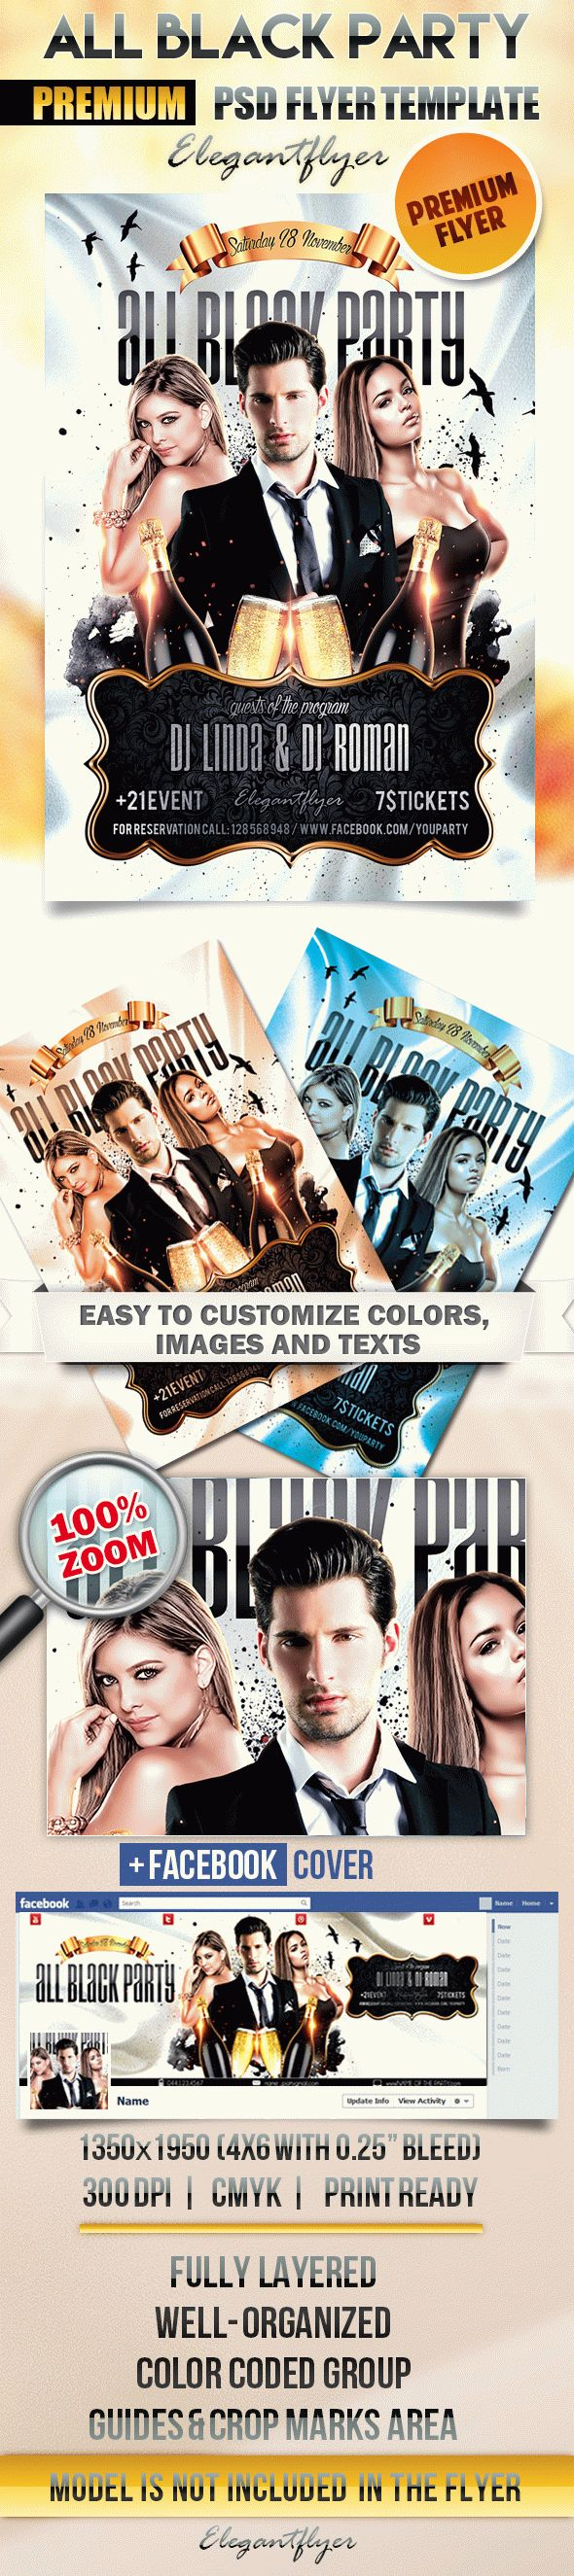 all black party  u2013 flyer psd template   facebook cover  u2013 by